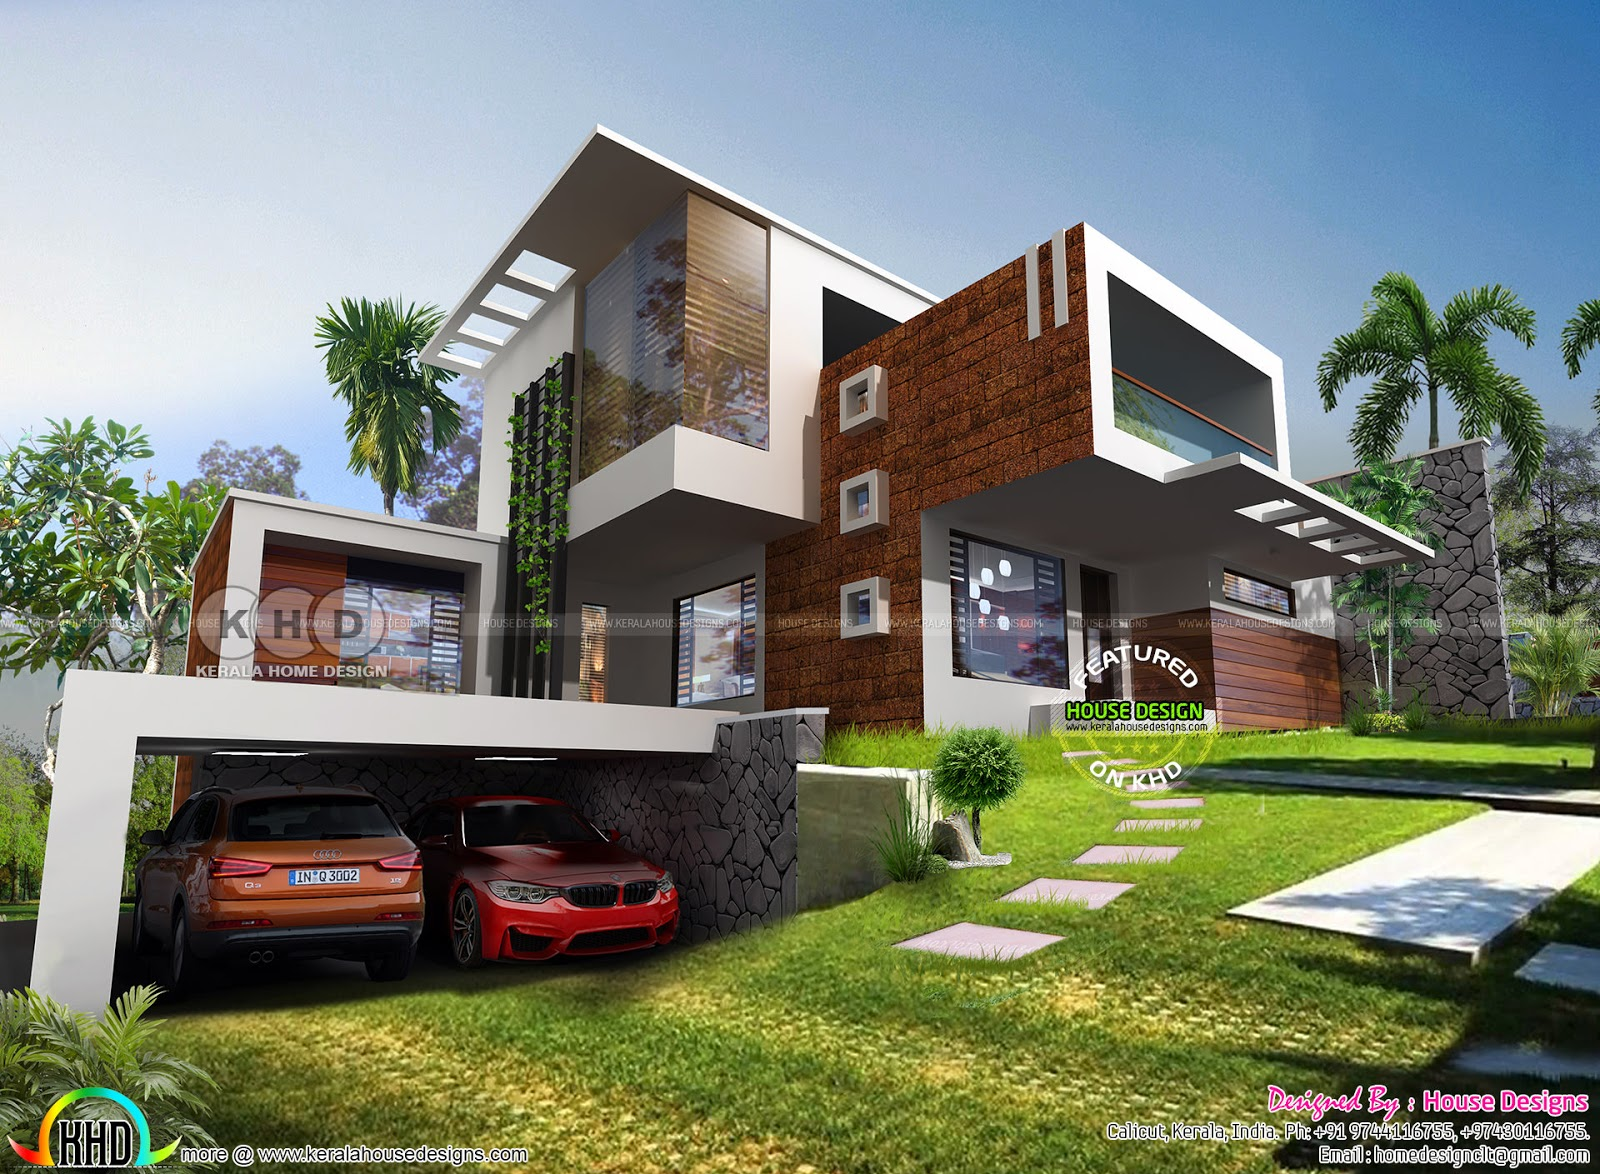 Outstanding contemporary style 4 bedroom home design kerala home design and floor plans - Outstanding modern houses ...